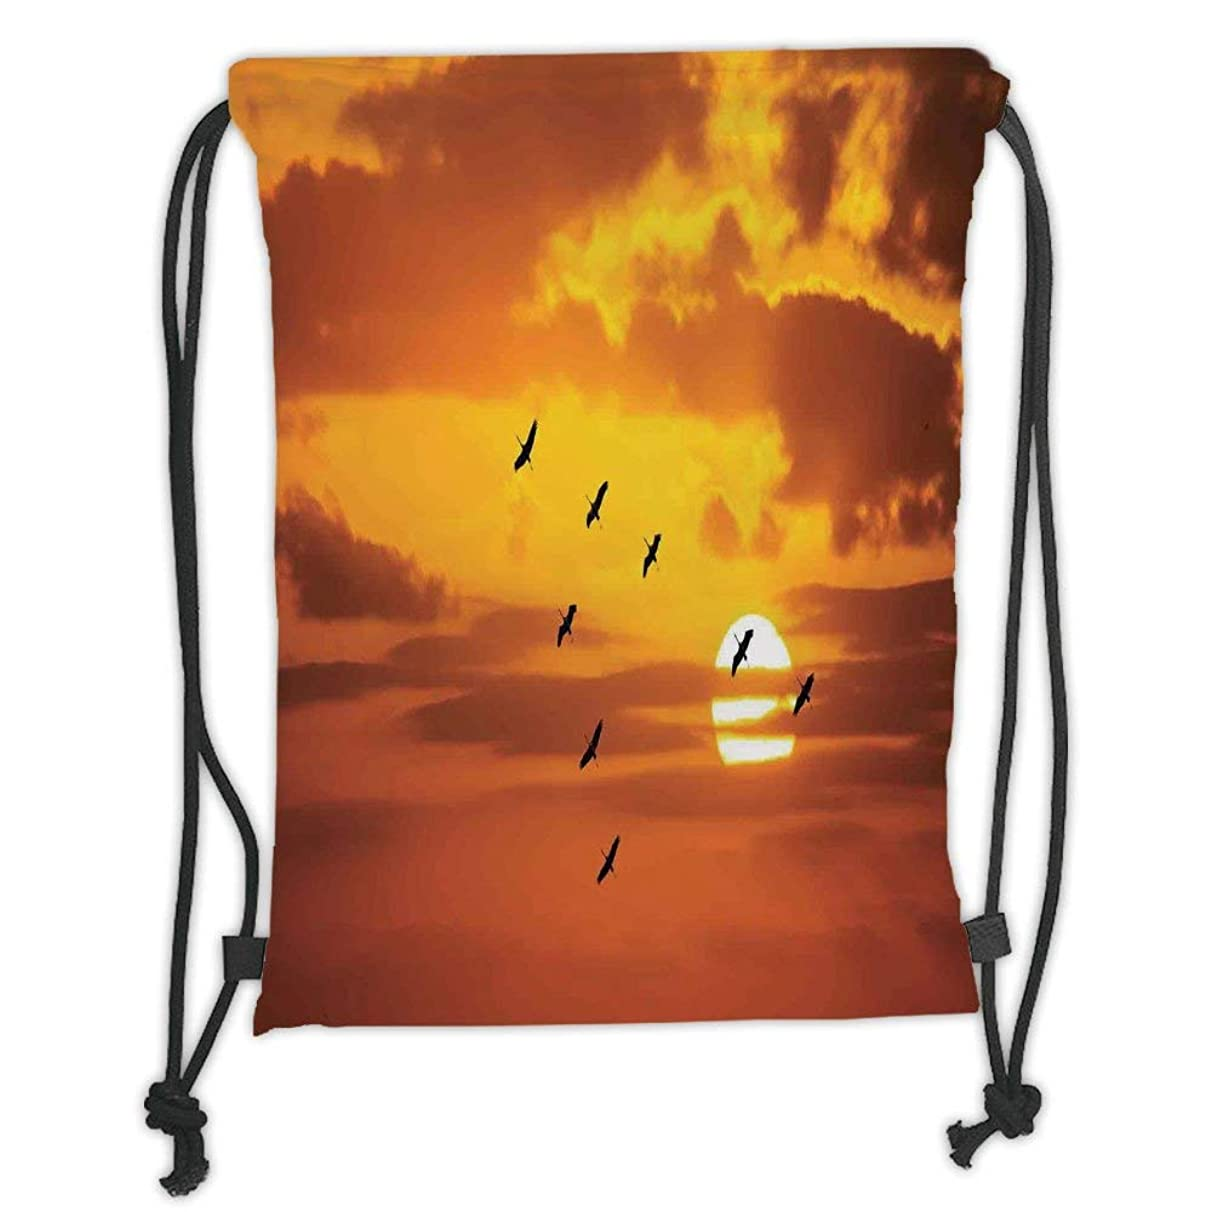 New Fashion Gym Drawstring Backpacks Bags,Birds,V Shaped Formation Flying in Cloudy Sky with a Shining Sun at Sunset Cloudscape Print,Orange Soft Satin,Adjustable String Closure,T